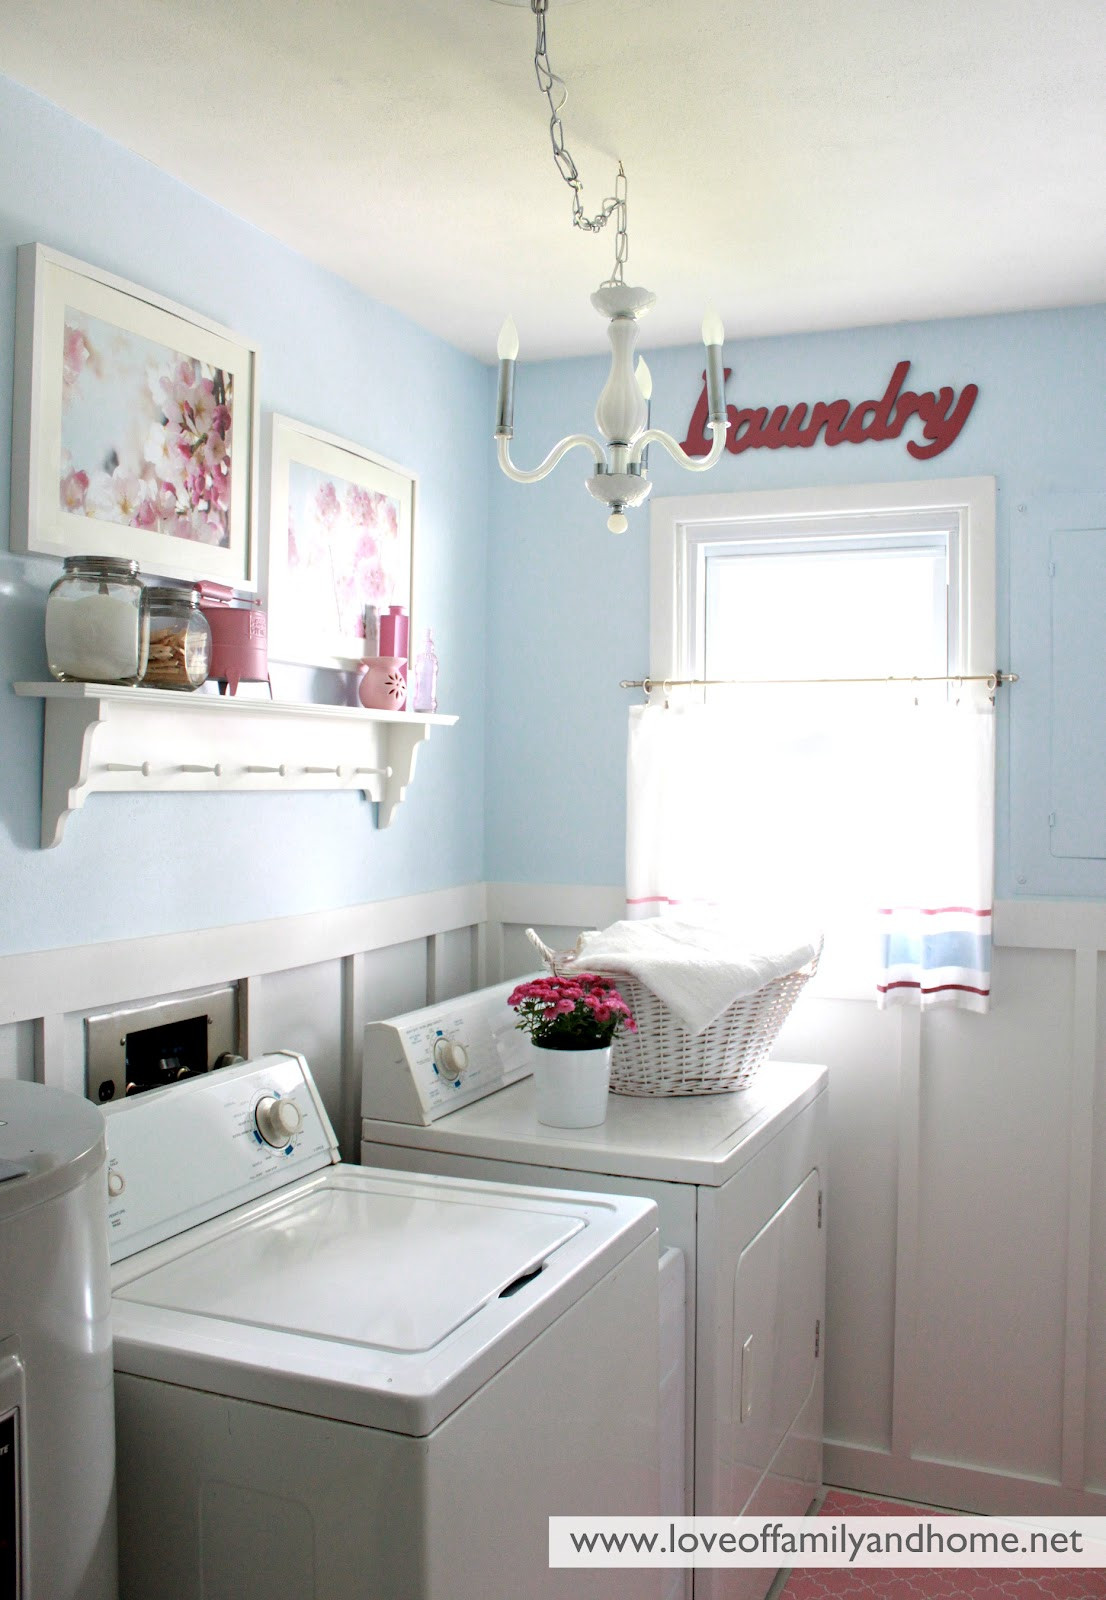 Best ideas about Laundry Room Makeover . Save or Pin Laundry Room Reveal Take 2 Love of Family & Home Now.